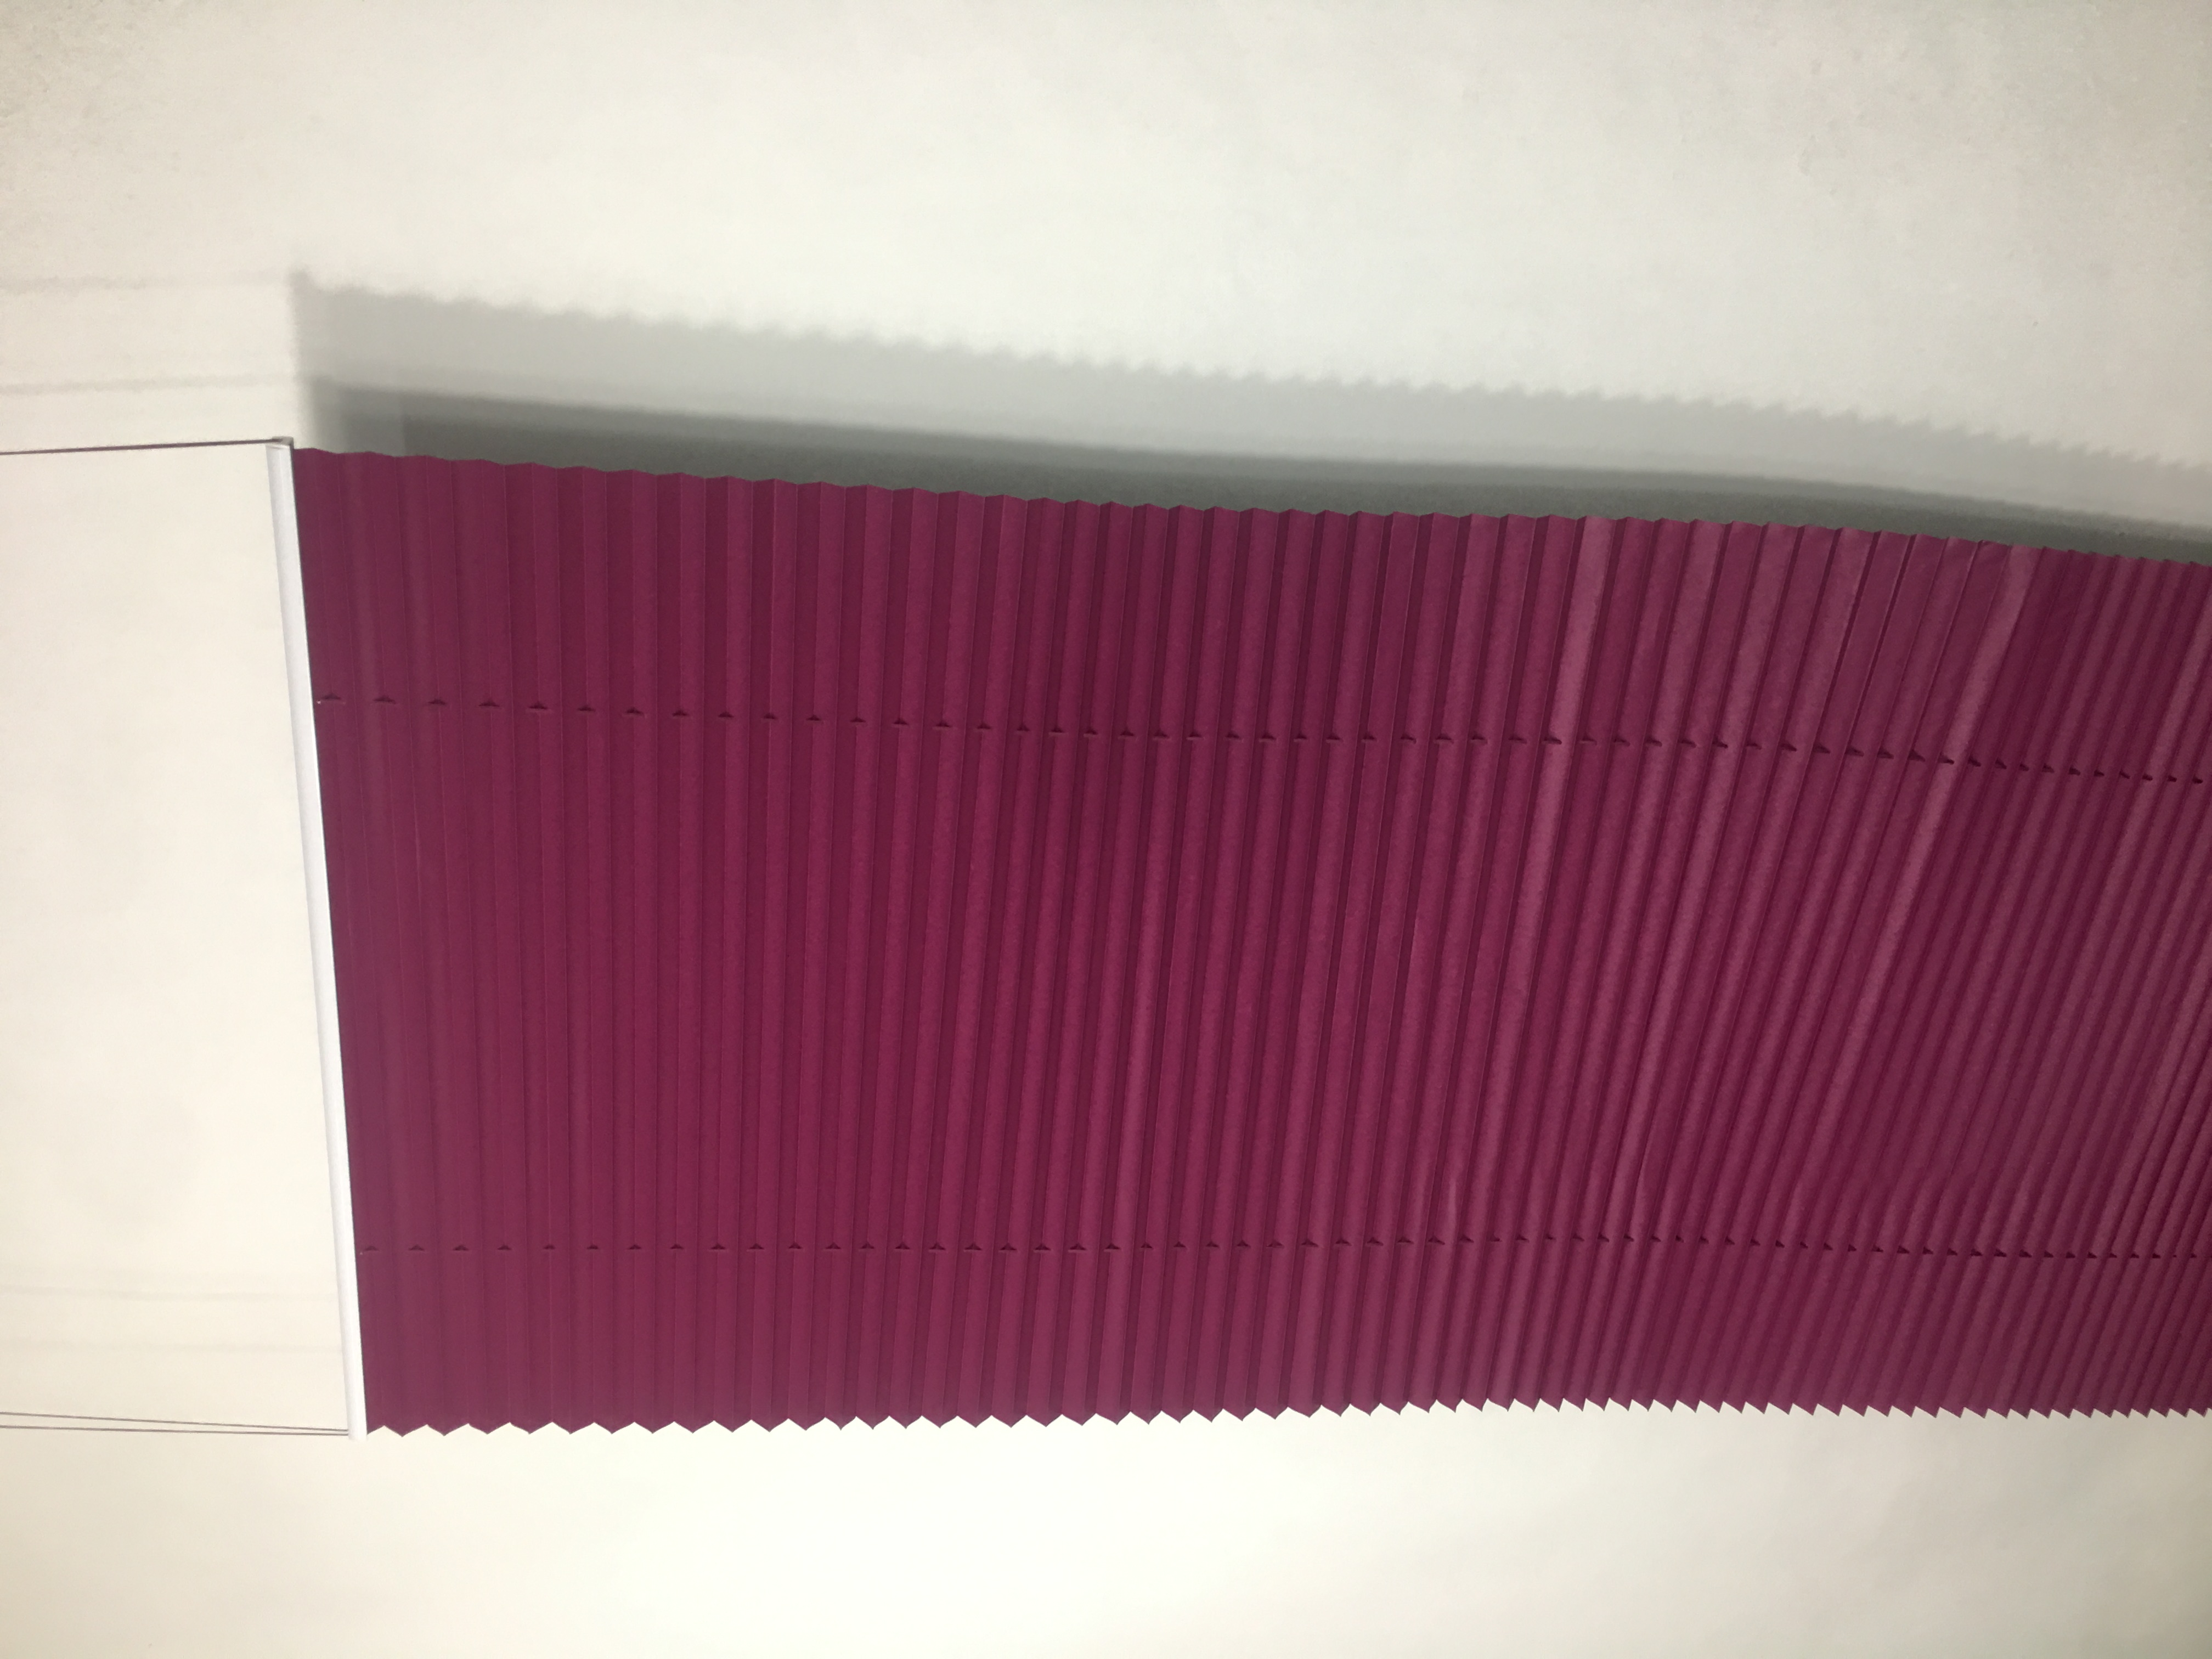 Rose Red Plisse Blind Solid Color Pleated French Blinds